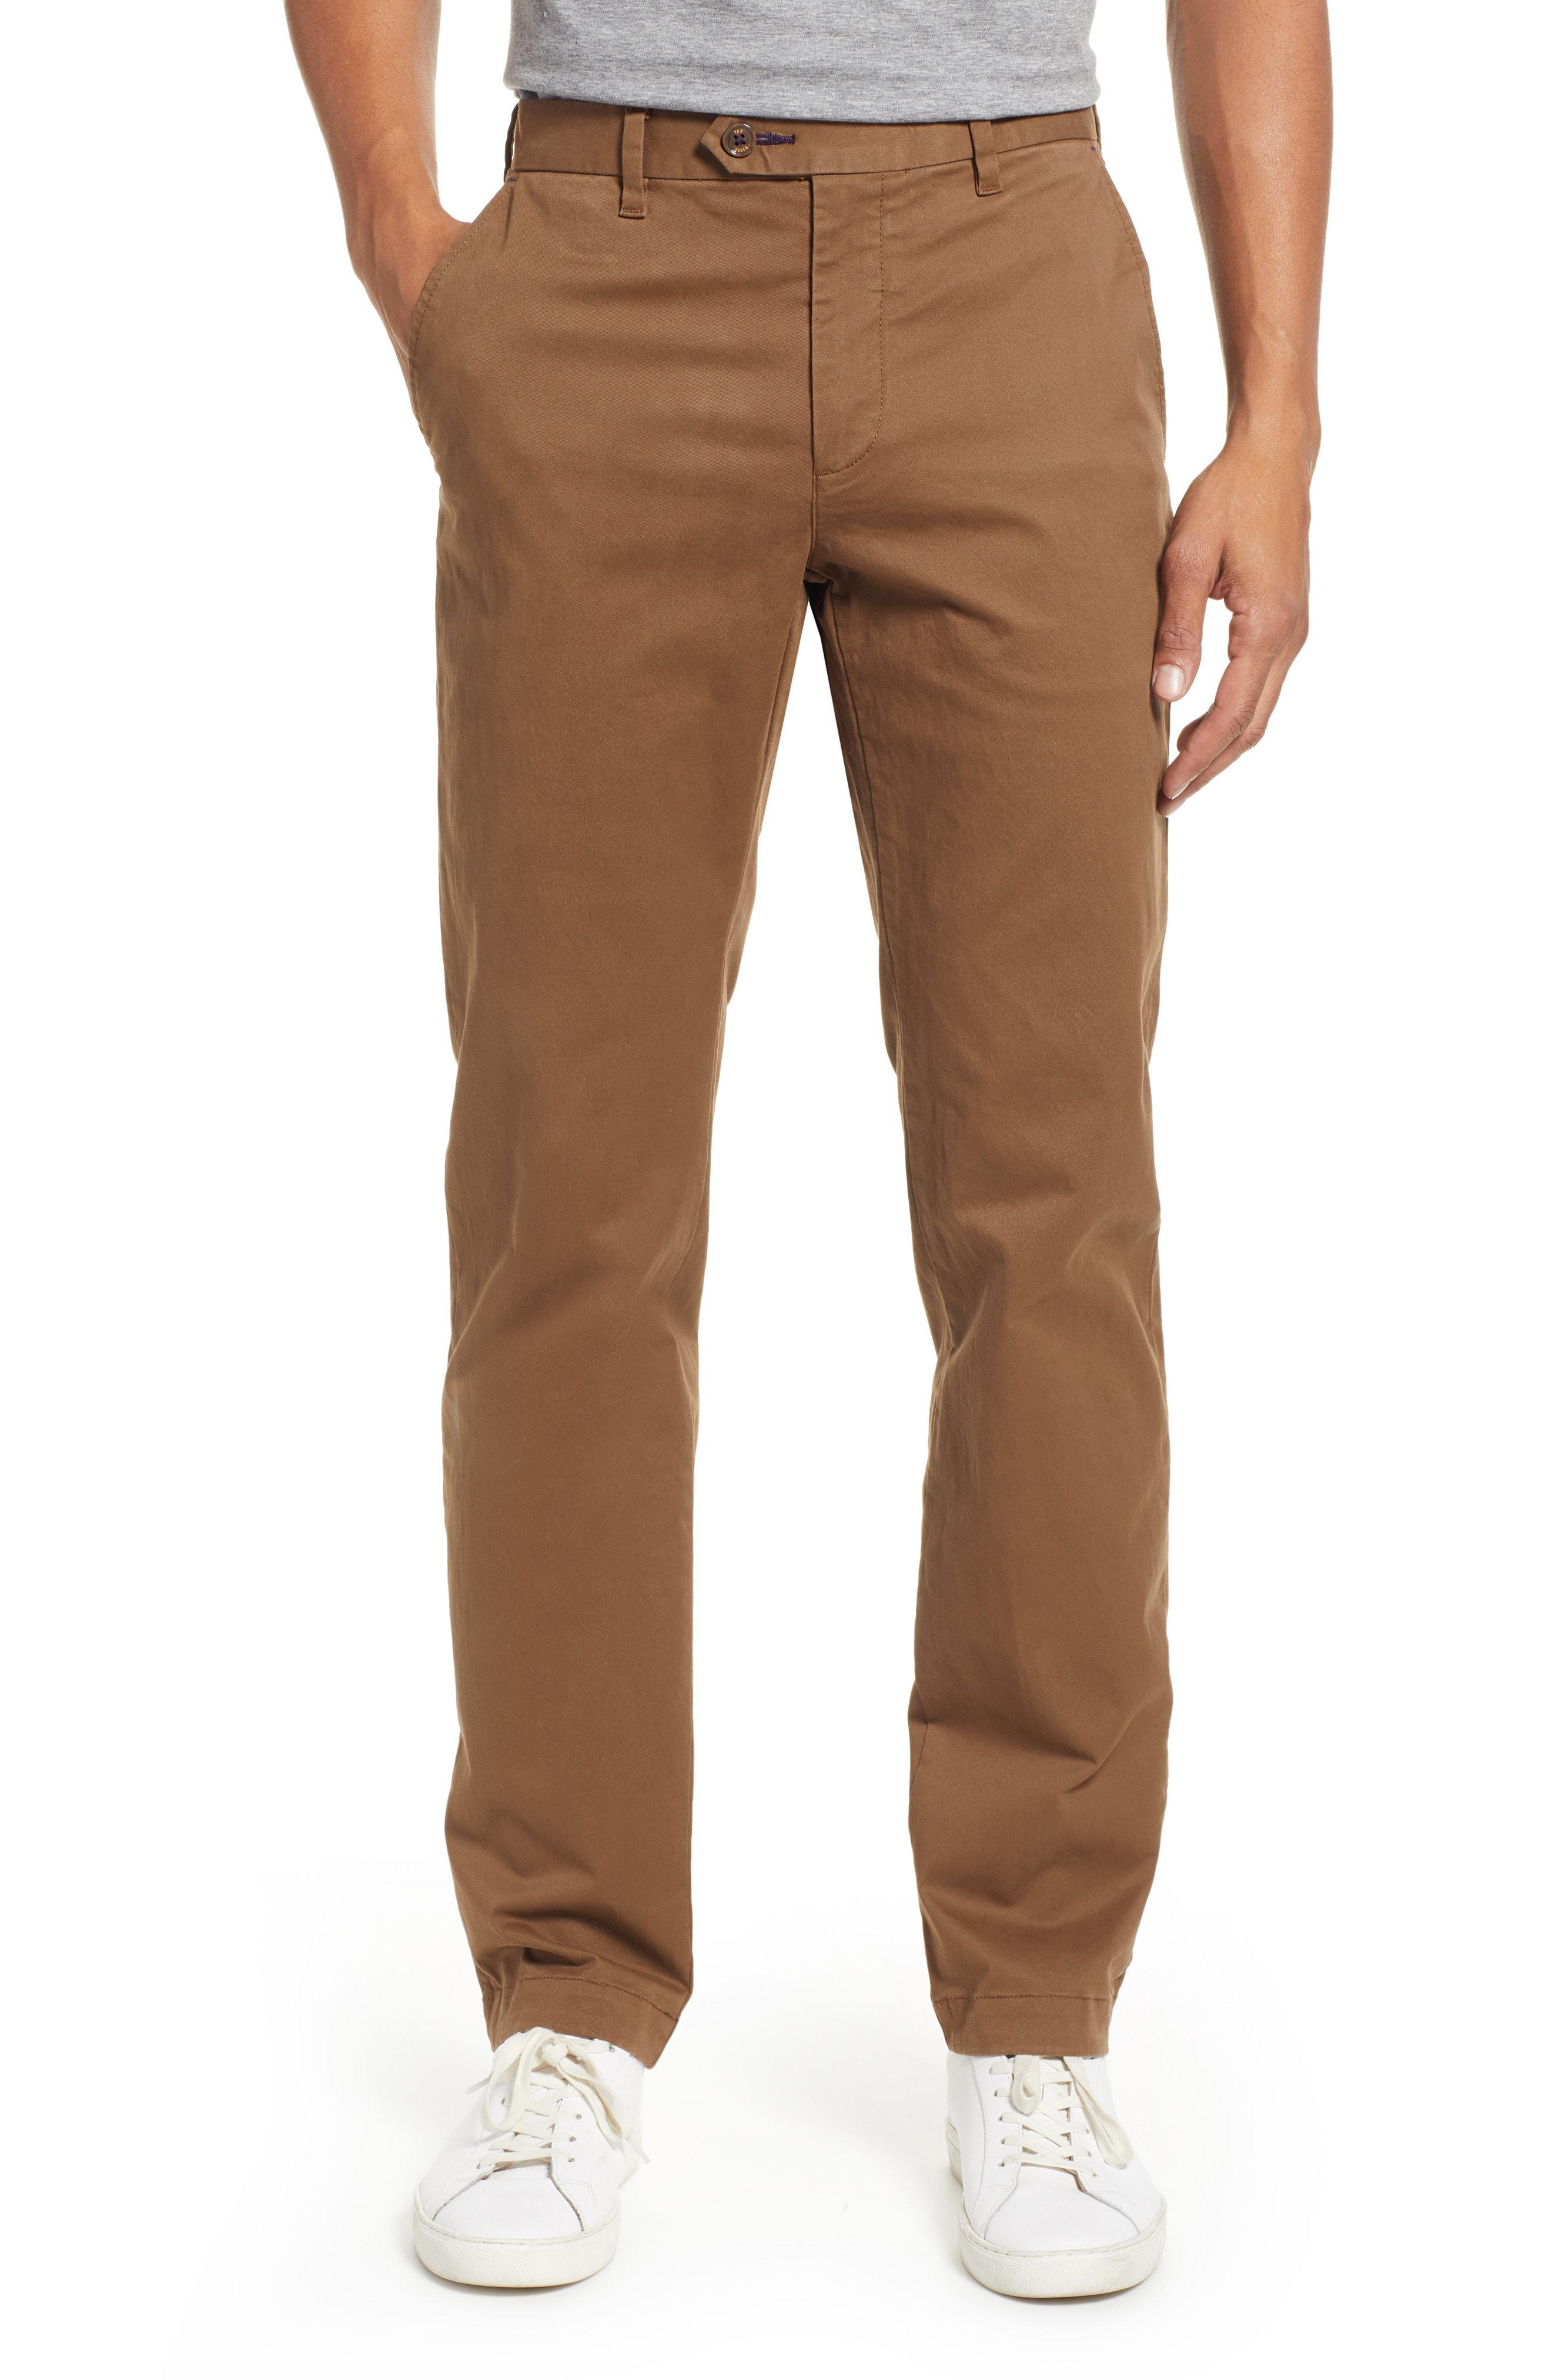 dd3b745fd Lyst - Ted Baker Selebtt Slim Fit Stretch Cotton Chinos in Natural ...